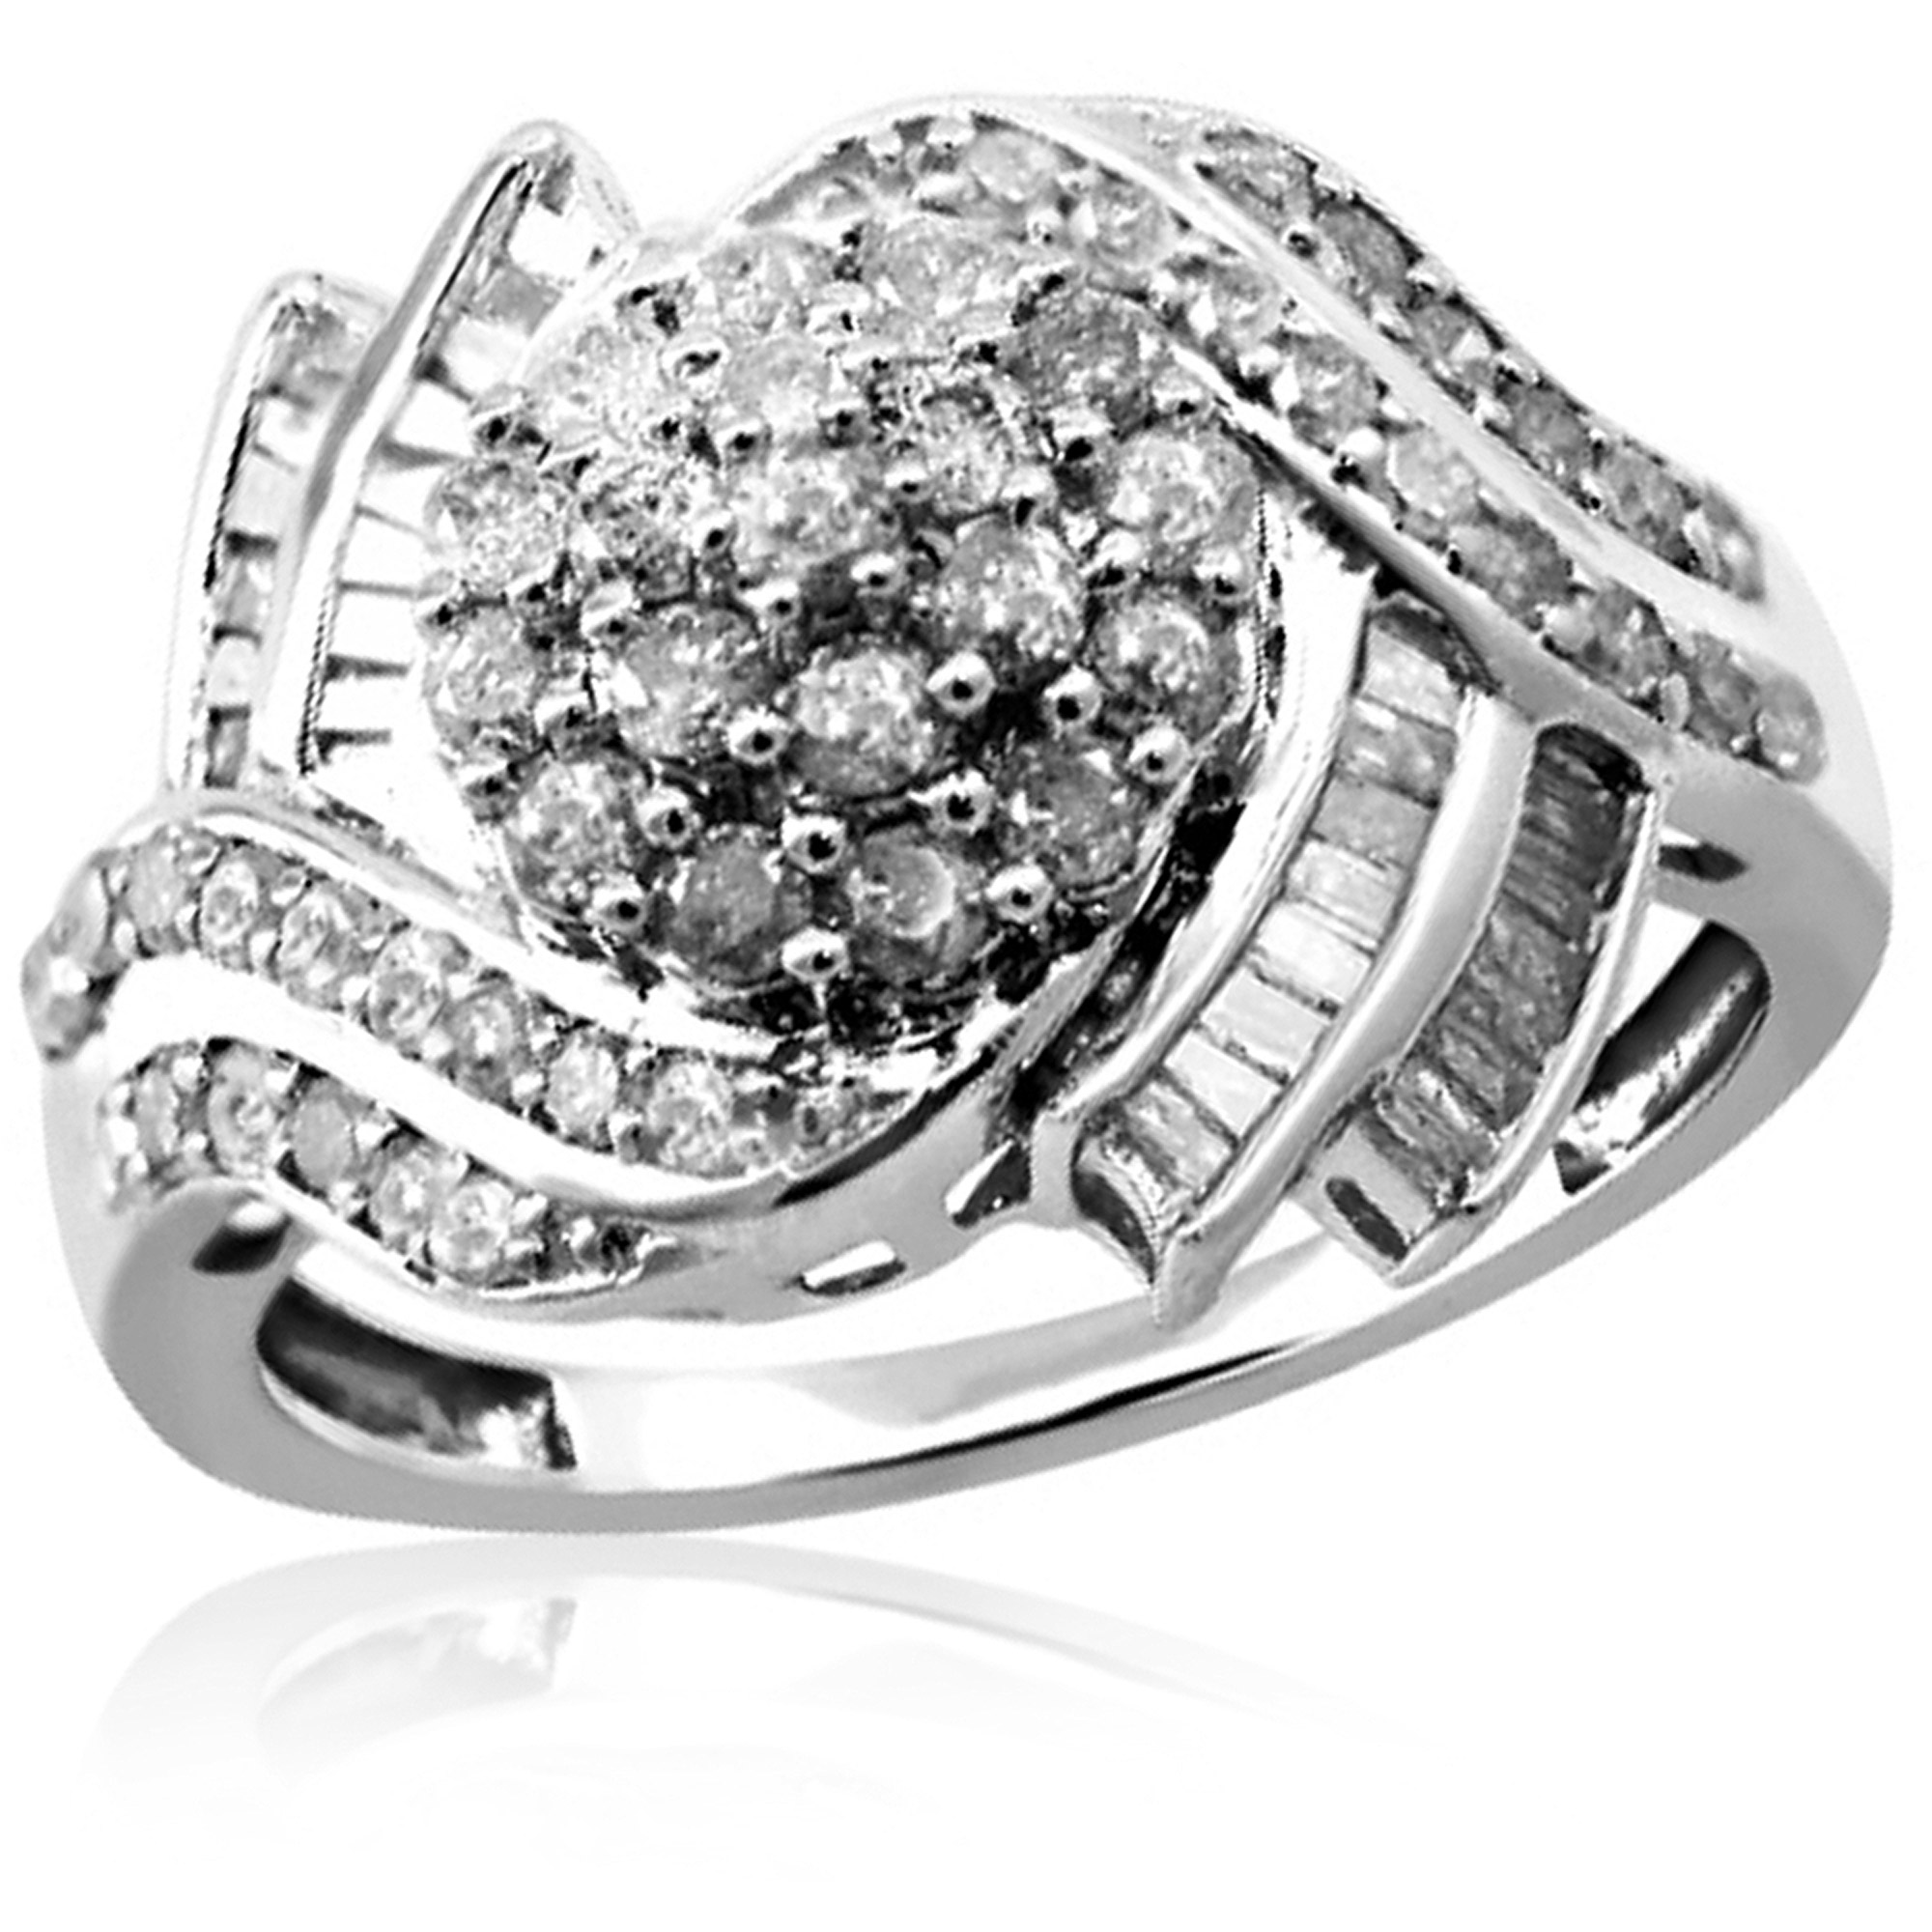 JewelersClub 1.00 CTW White Diamond Ring in Sterling Silver